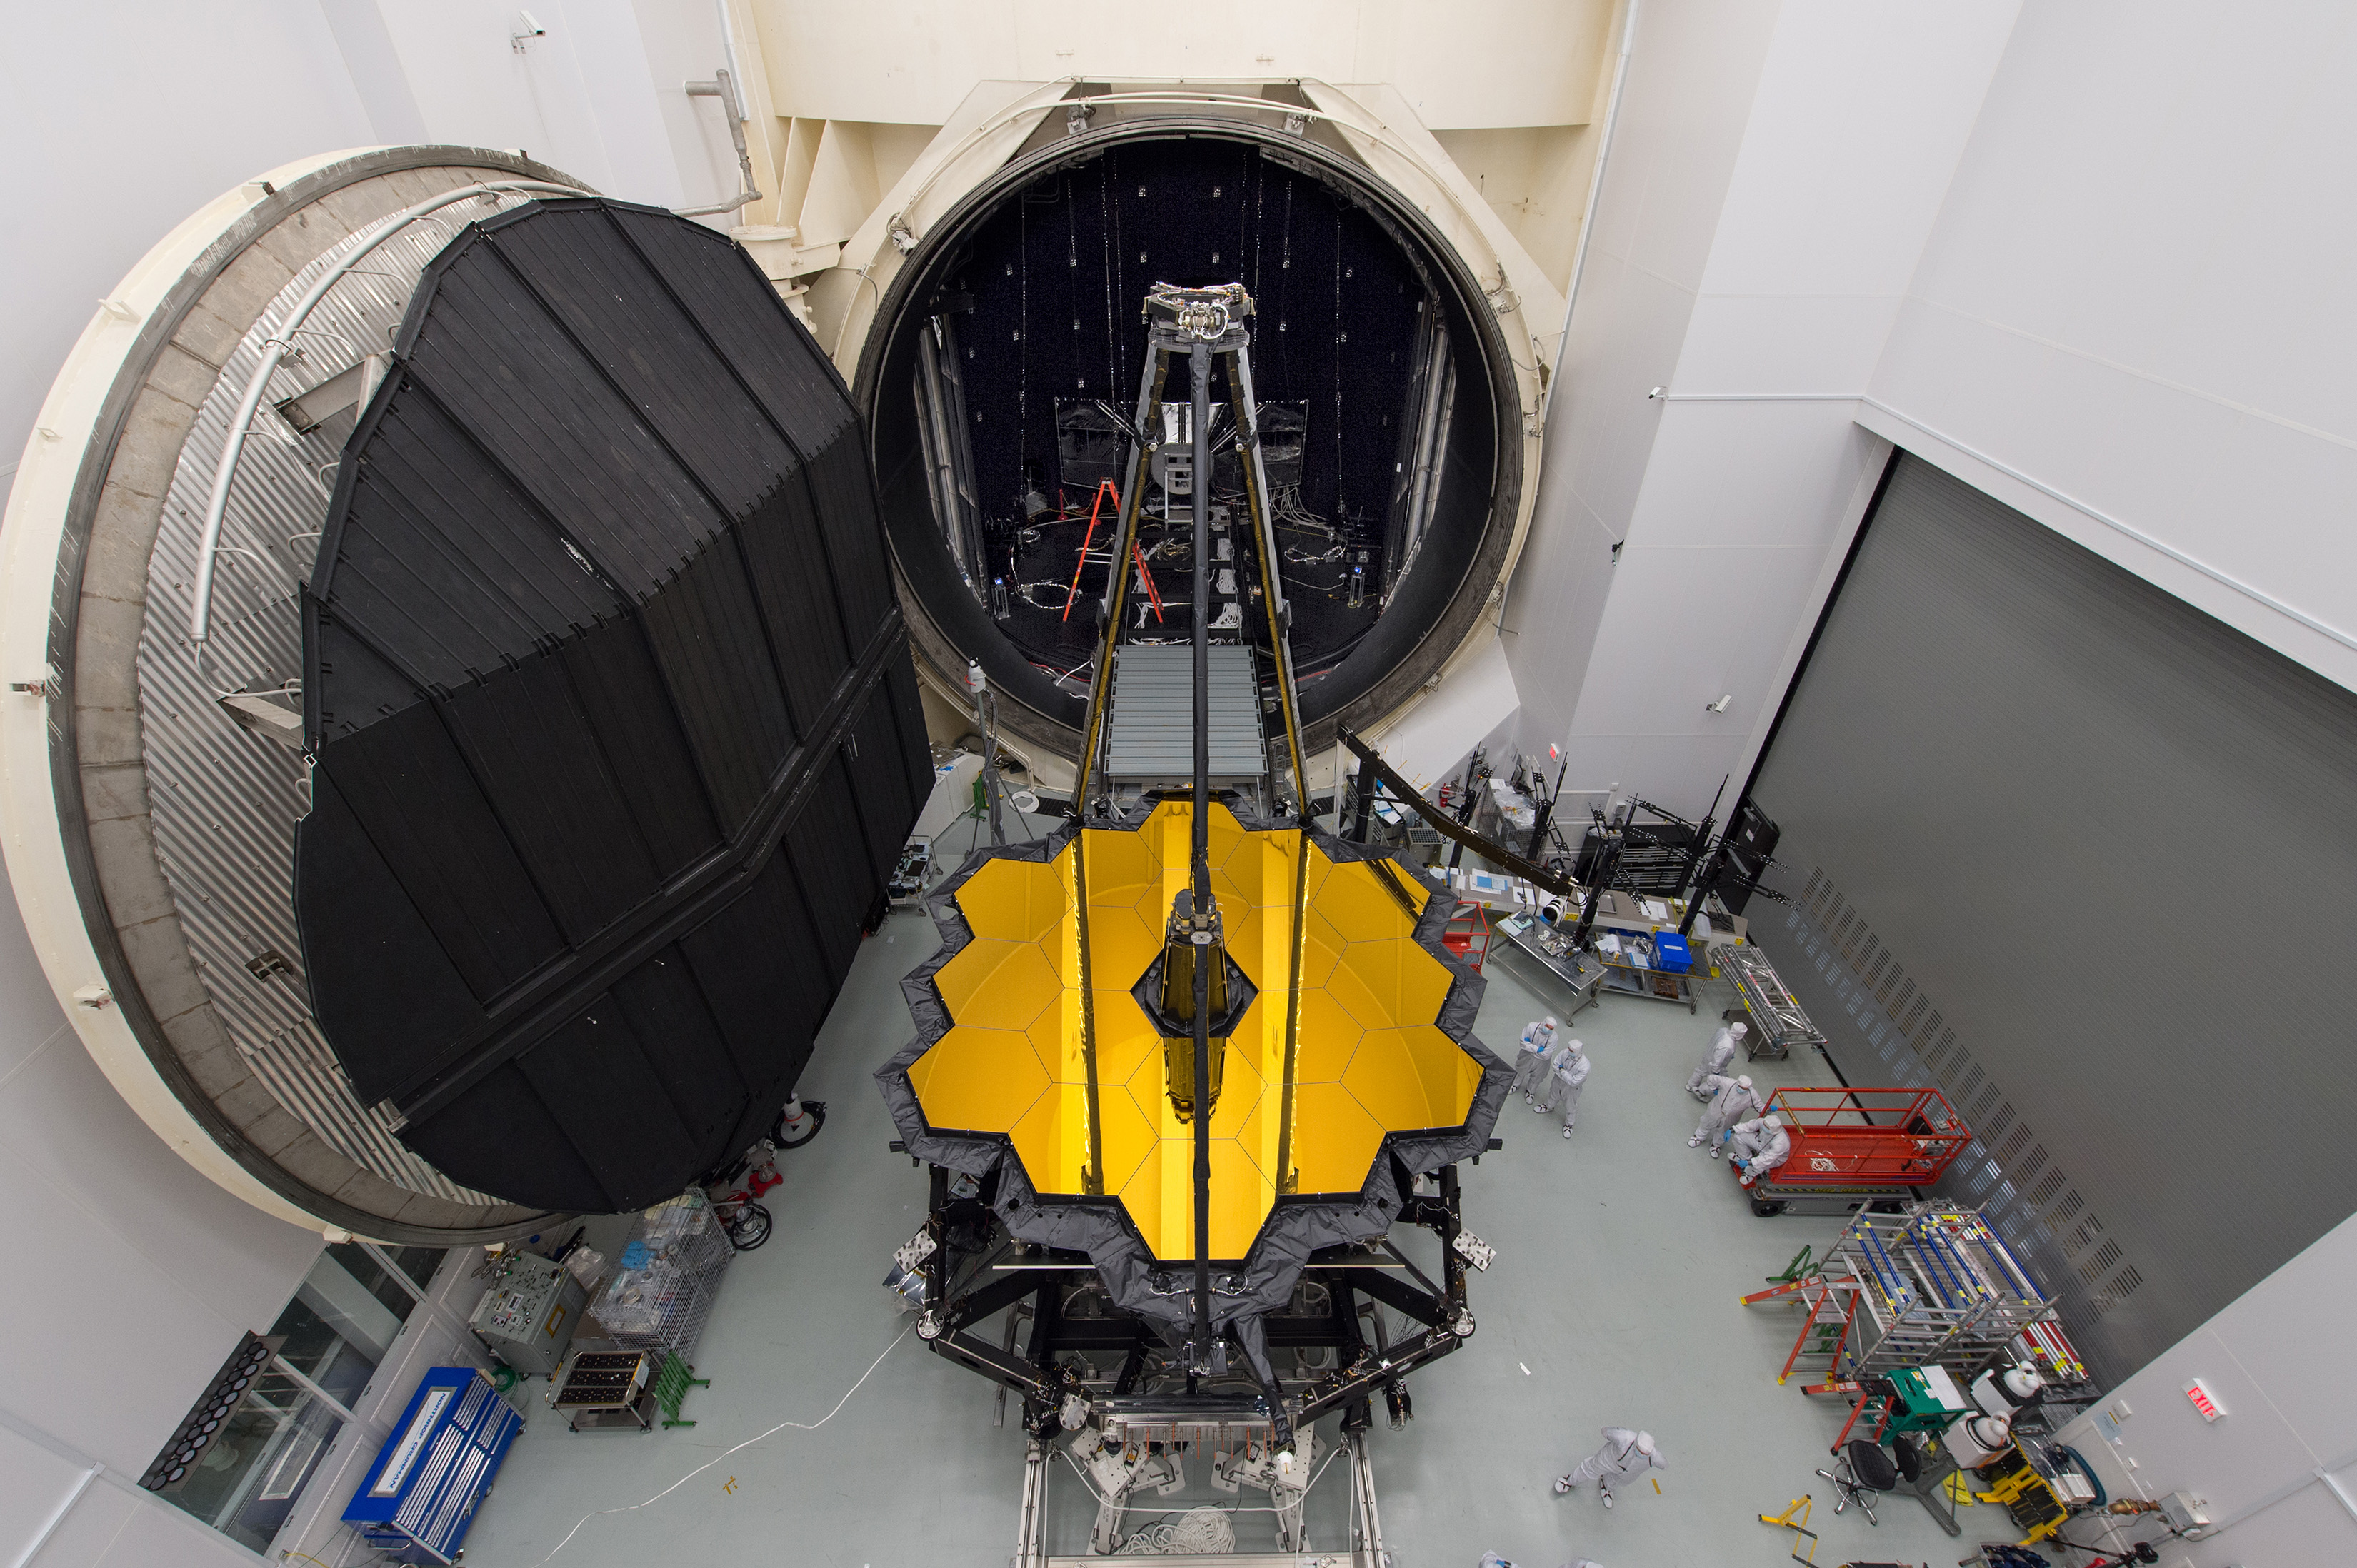 NASA Image of the Day: Webb Telescope Set for Testing in Space Simulation Chamber